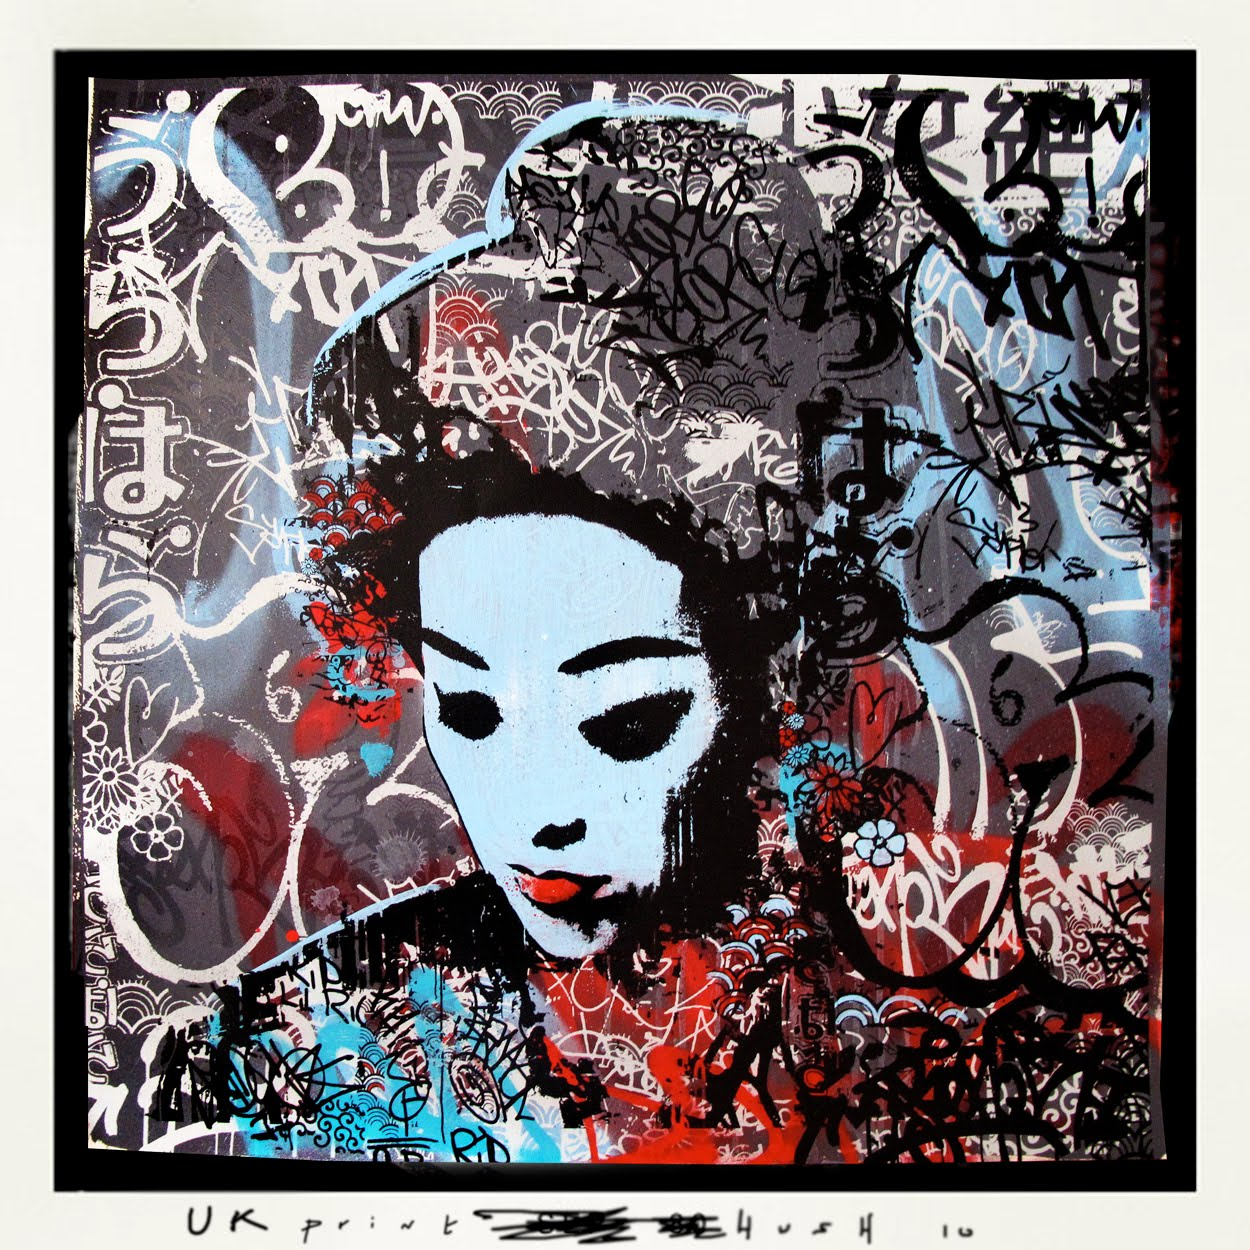 Here are some details regarding the free print give away from artist hush these are being released in conjunction with his found art show at white